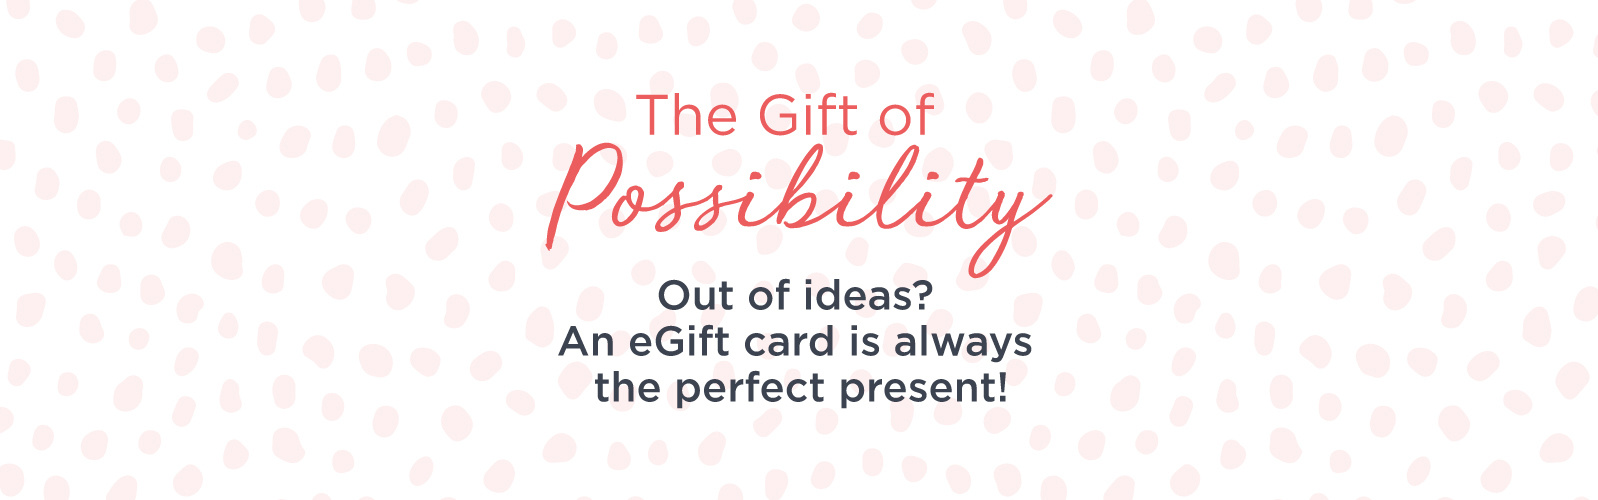 The Gift of Possibility Out of ideas? An eGift card is the perfect present.